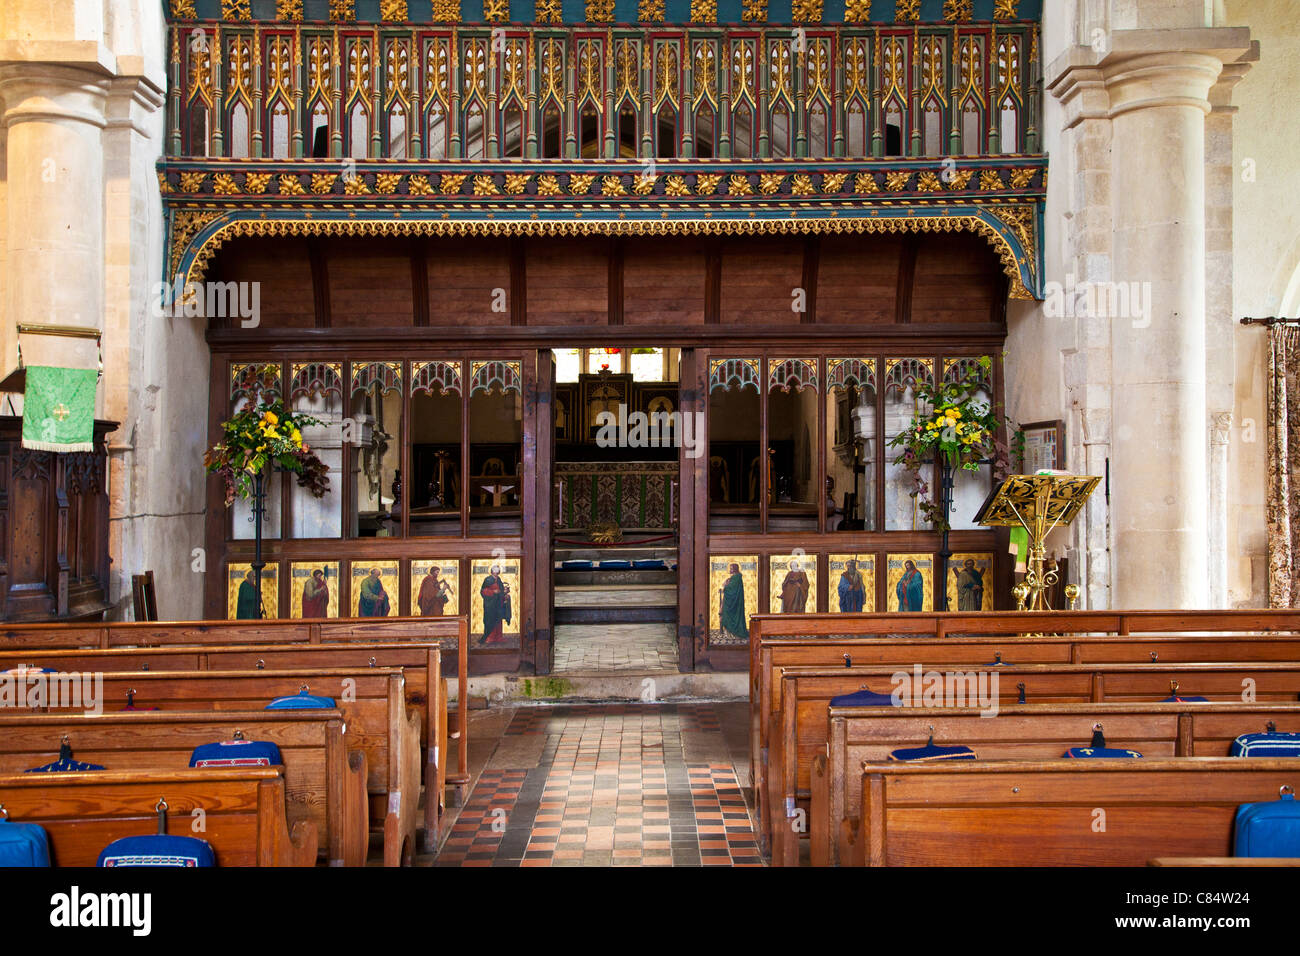 The magnificent rood loft and screen in St. James' Church in Avebury in Wiltshire, England, UK - Stock Image